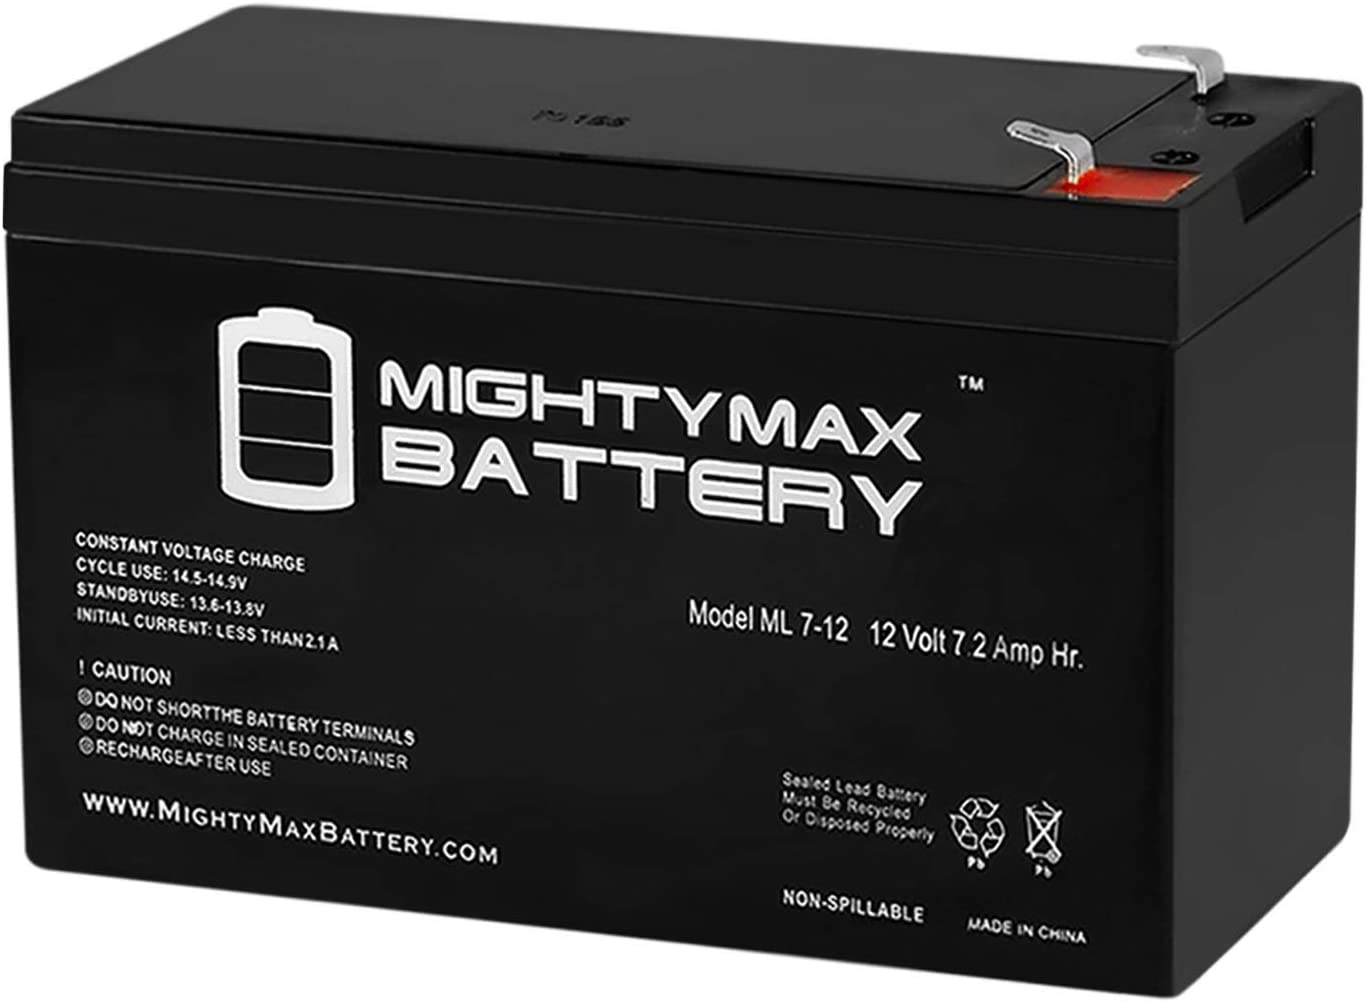 Mighty Max Battery 12V 7.2AH SLA Battery for Verizon FiOS PX12072-HG Brand Product